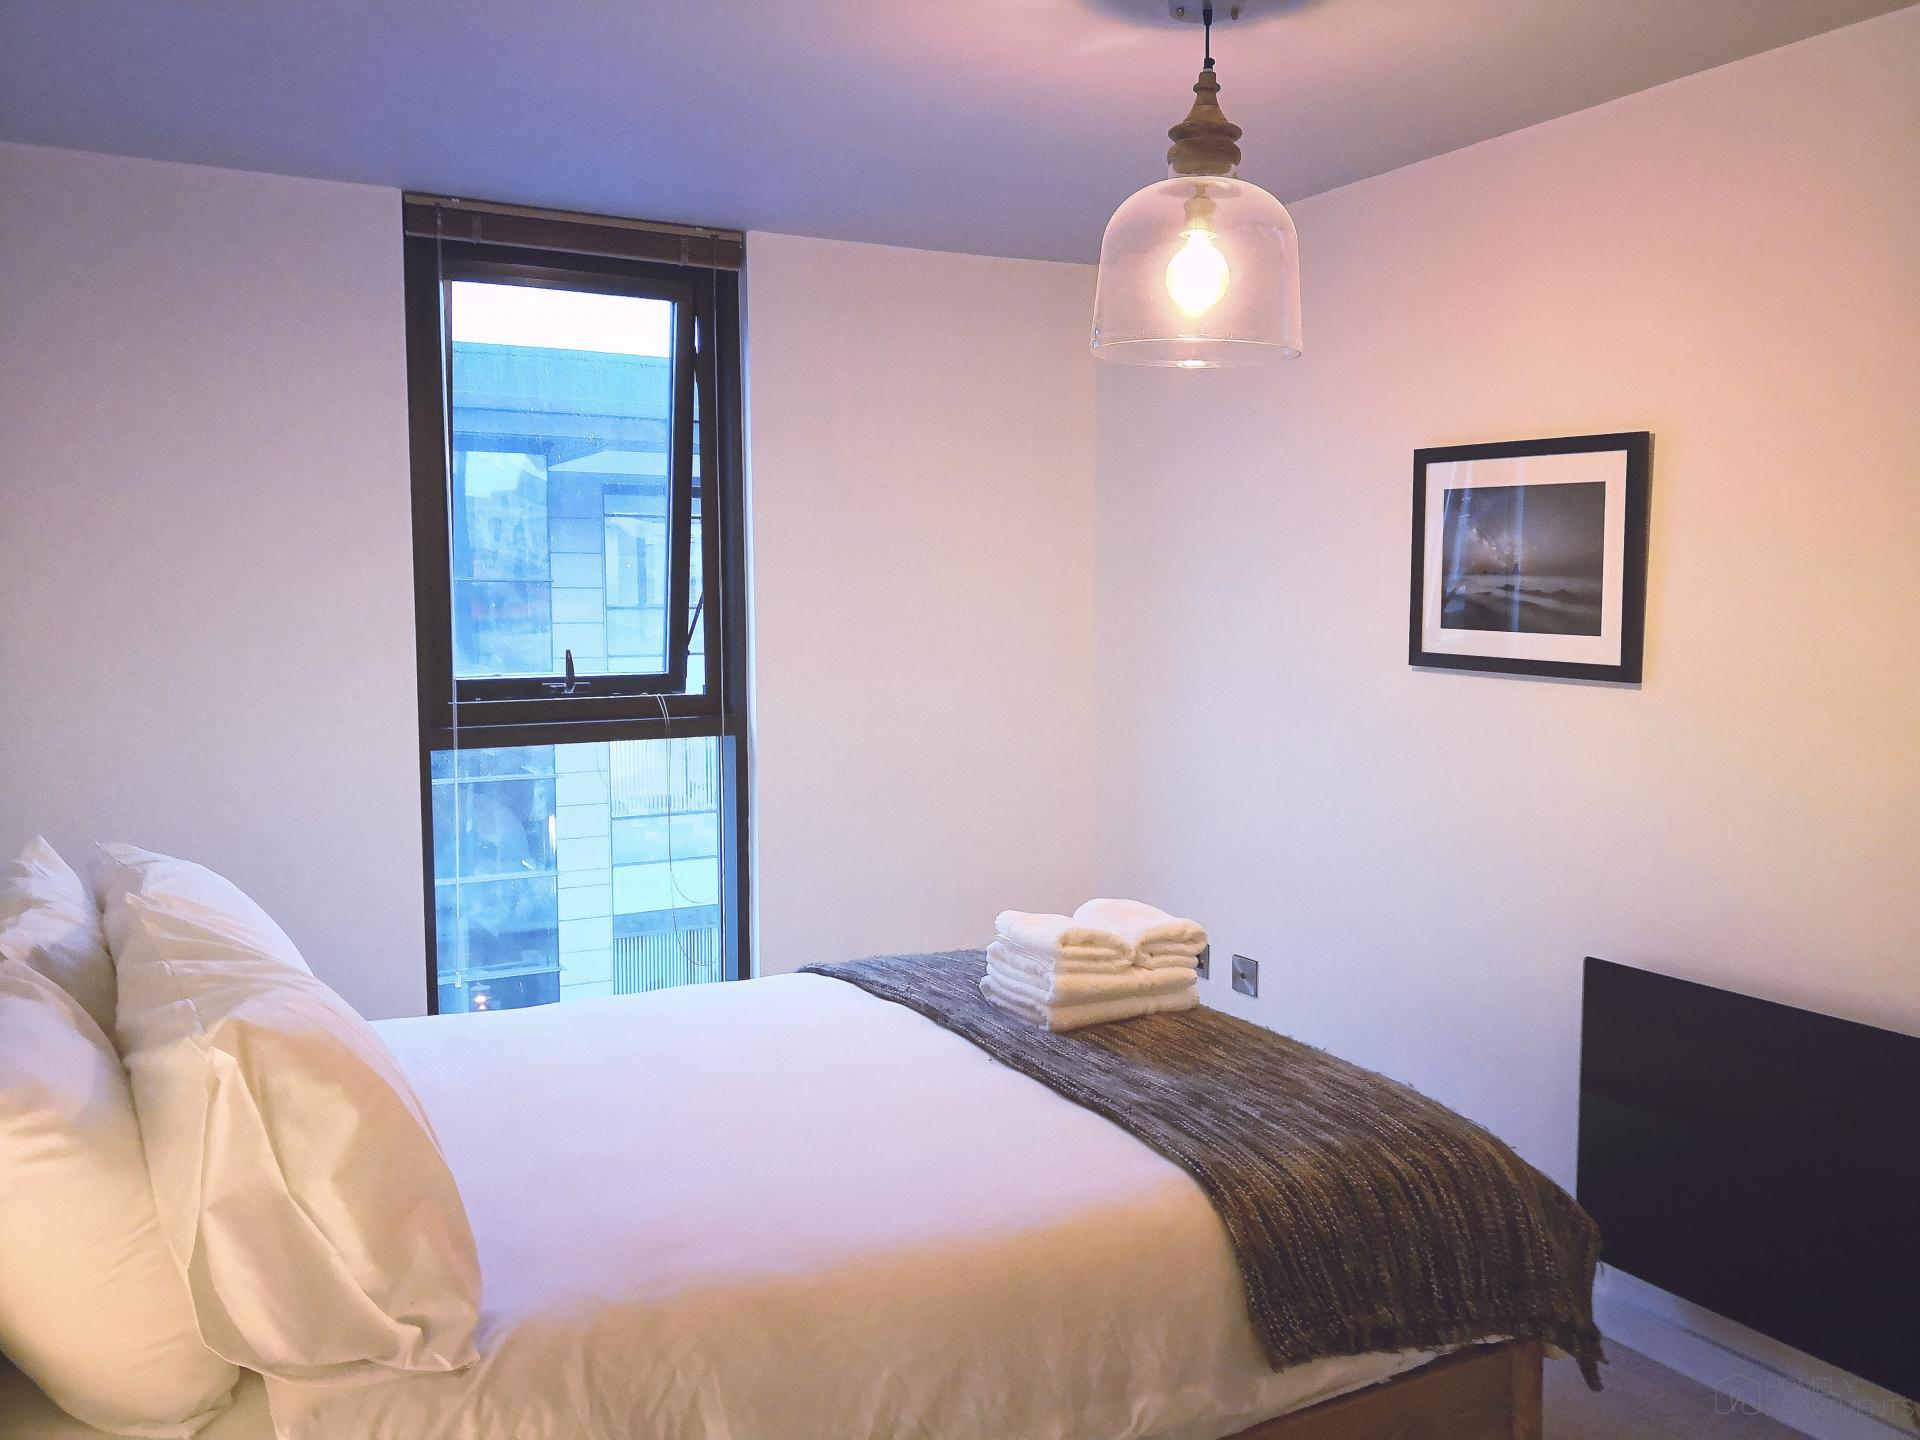 Double bed at Blonk Street Apartments - Citybase Apartments